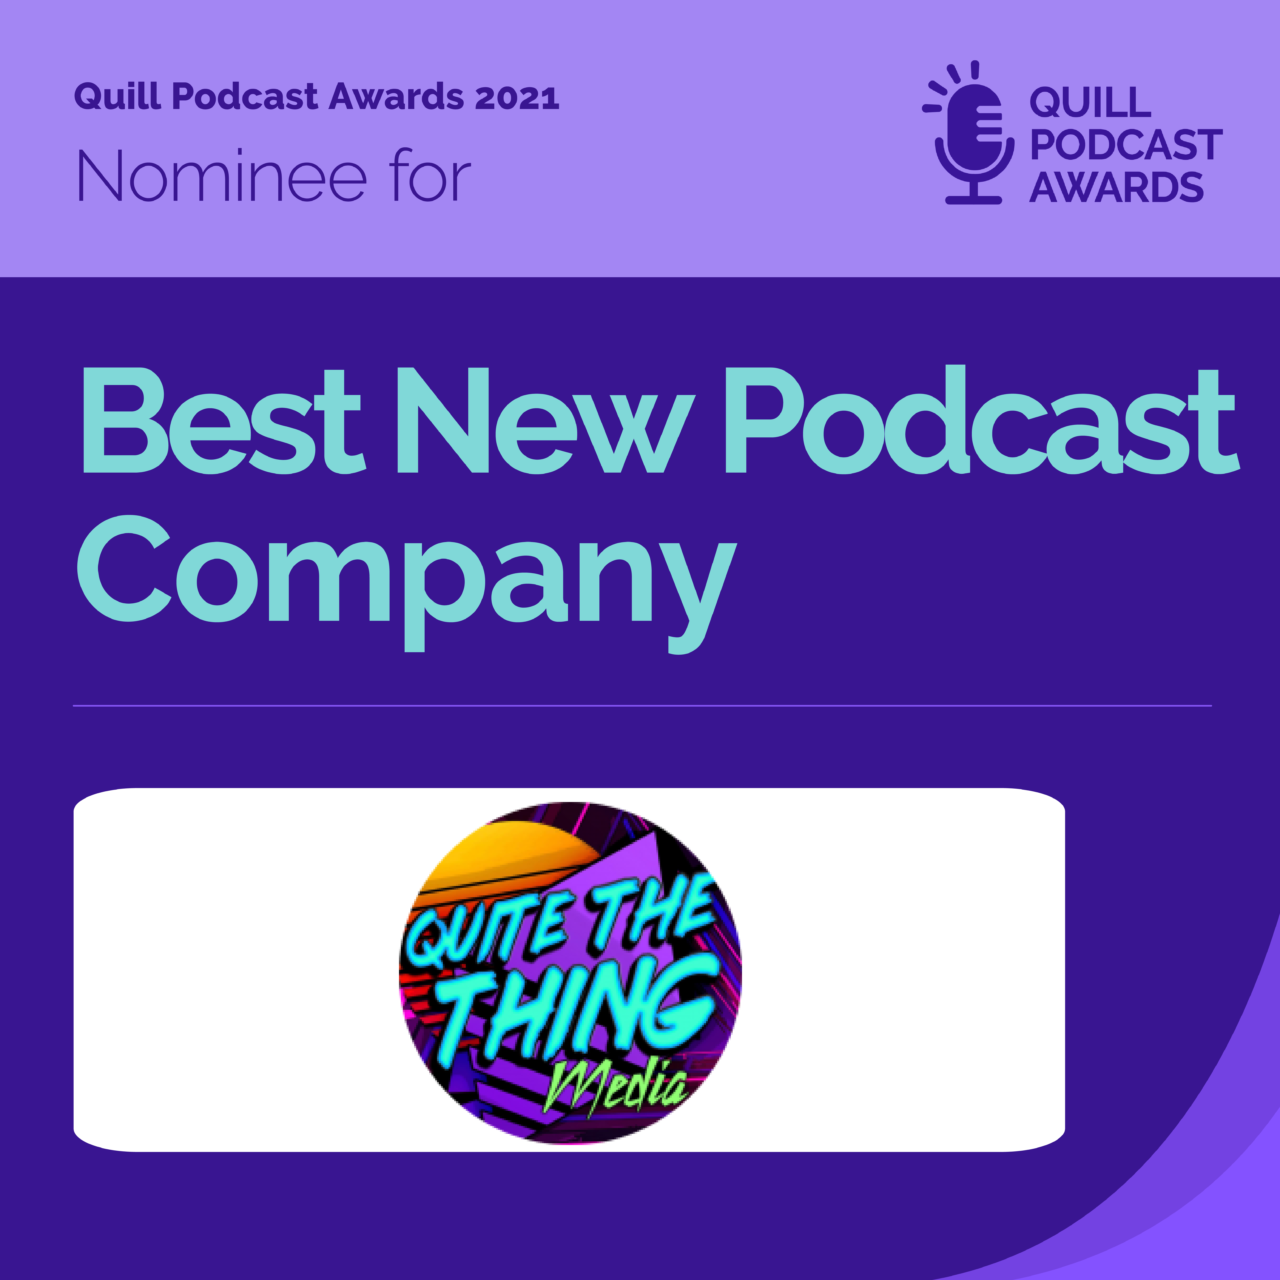 Finalist for Best New Podcast Company at the Quill Podcast Awards